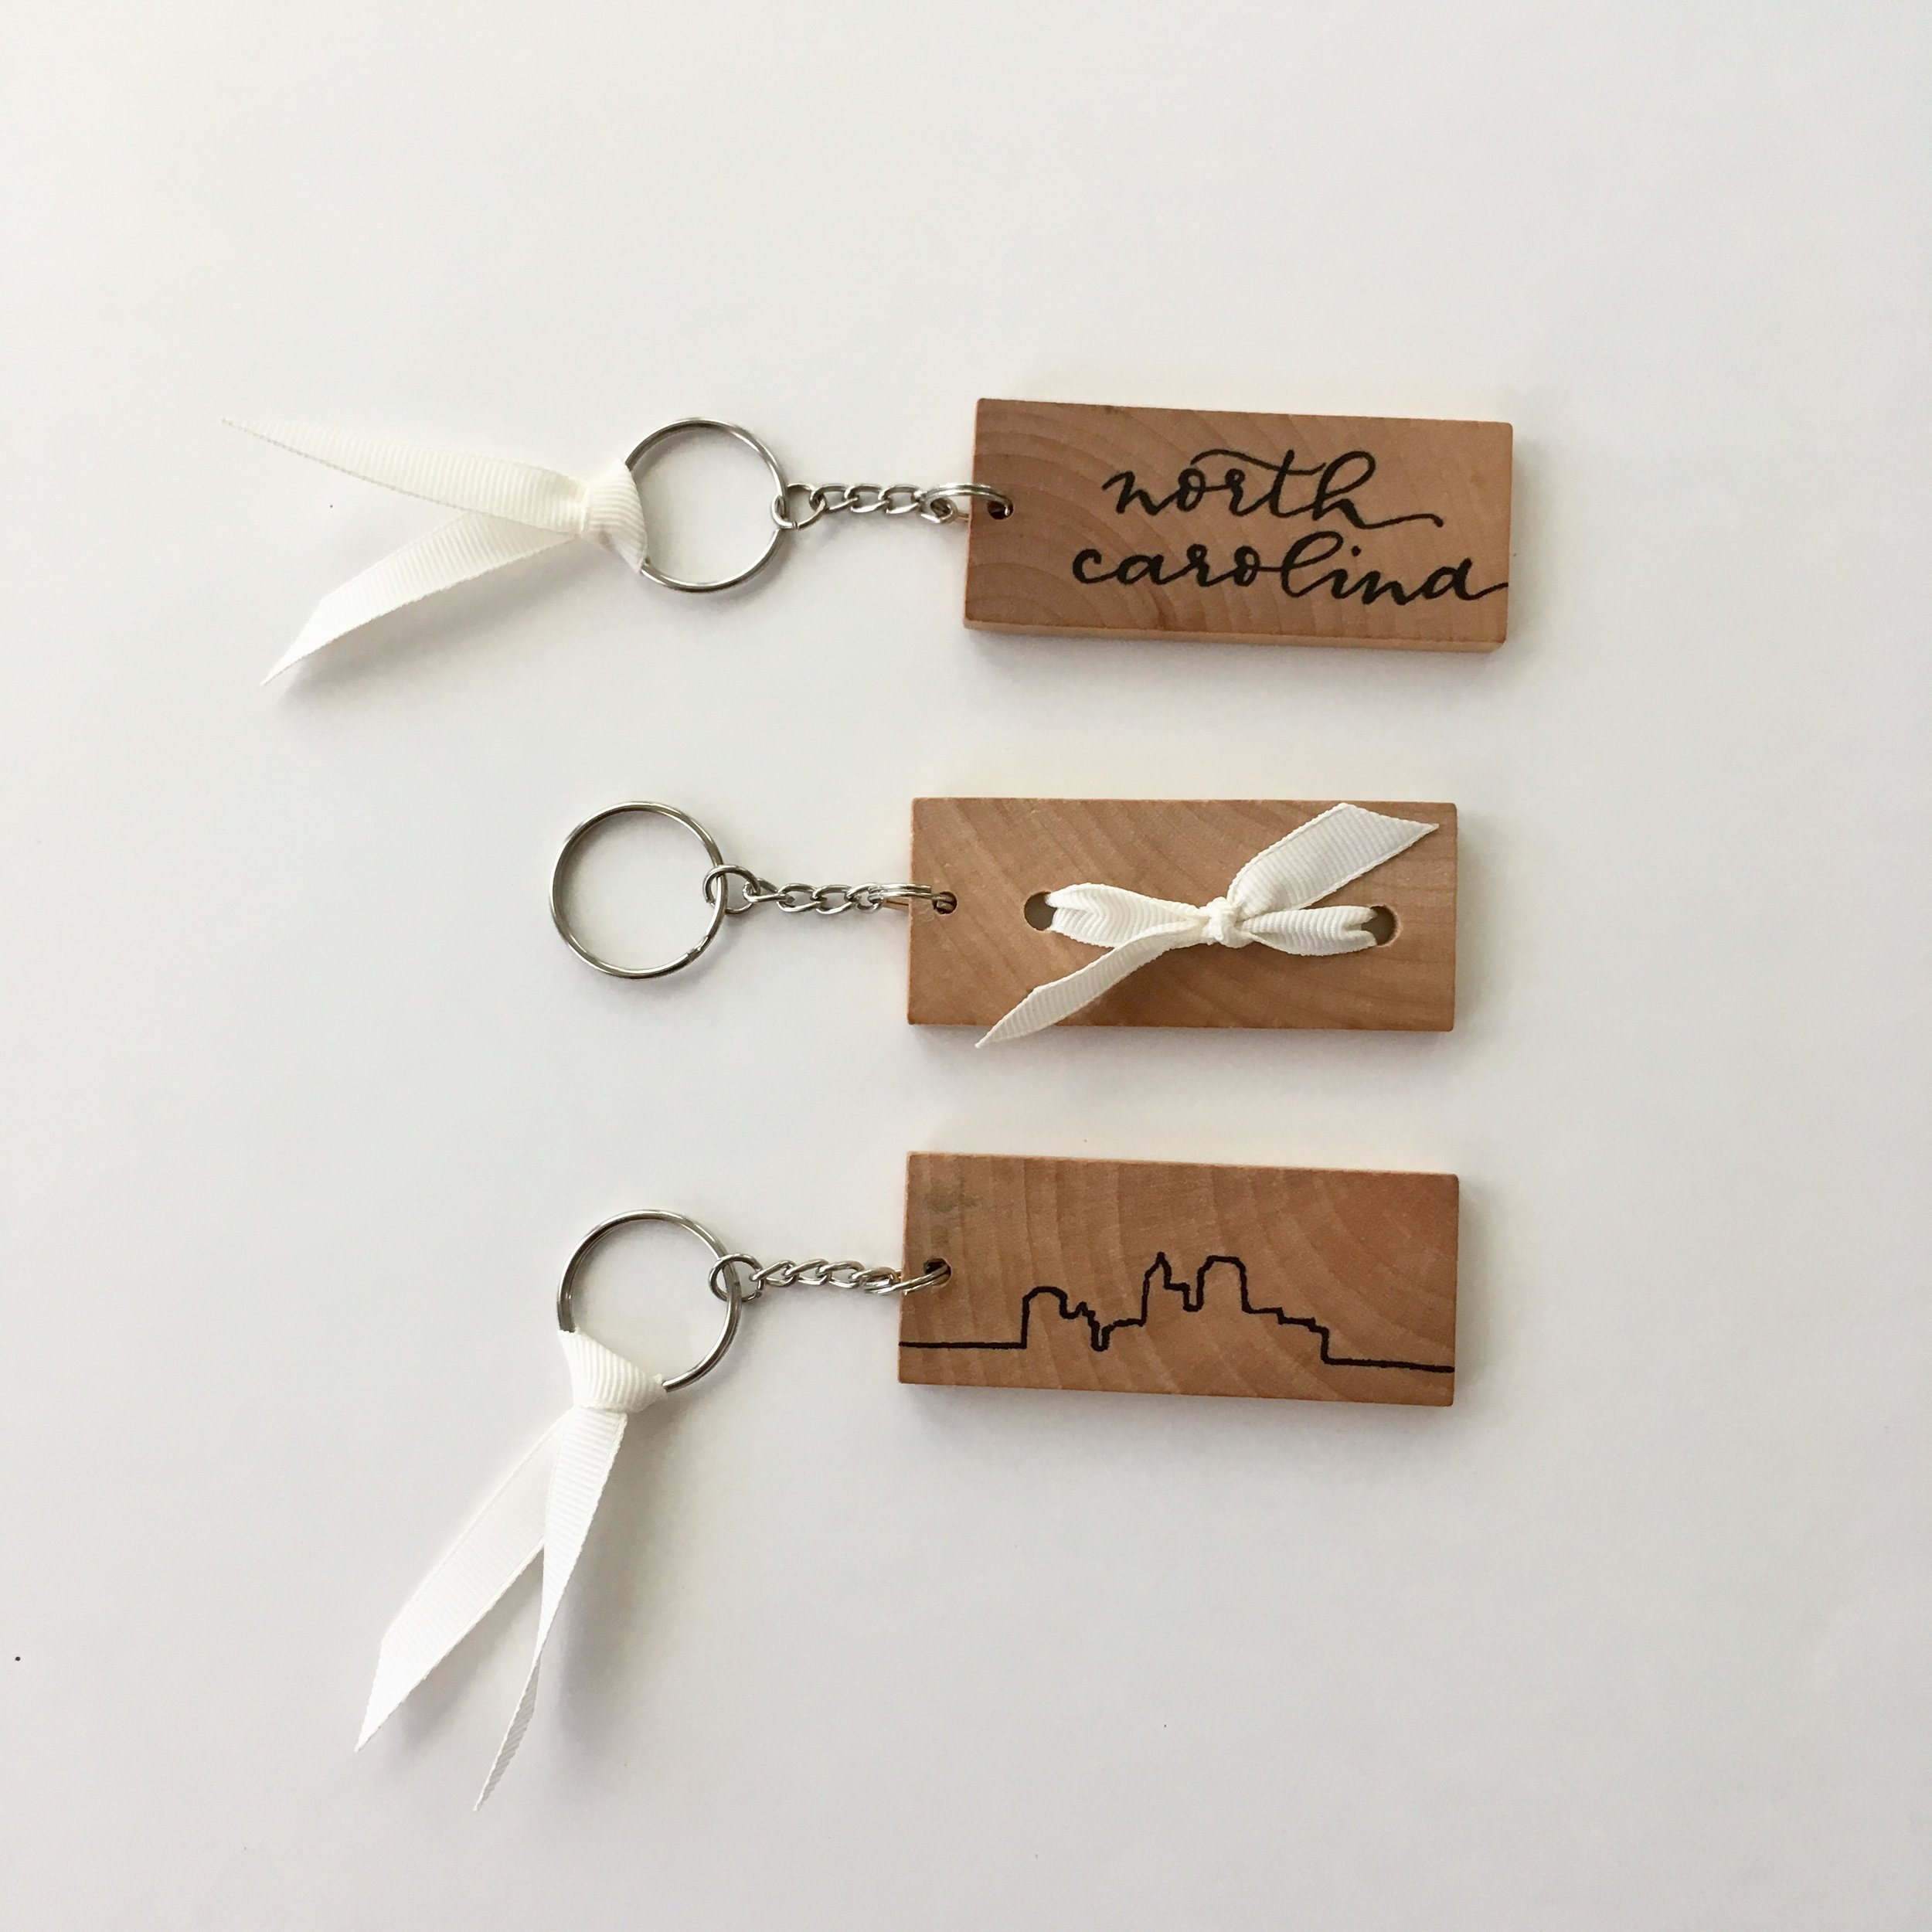 State Key Chains - The perfect keepsake key chain to celebrate a first home or a hometown.